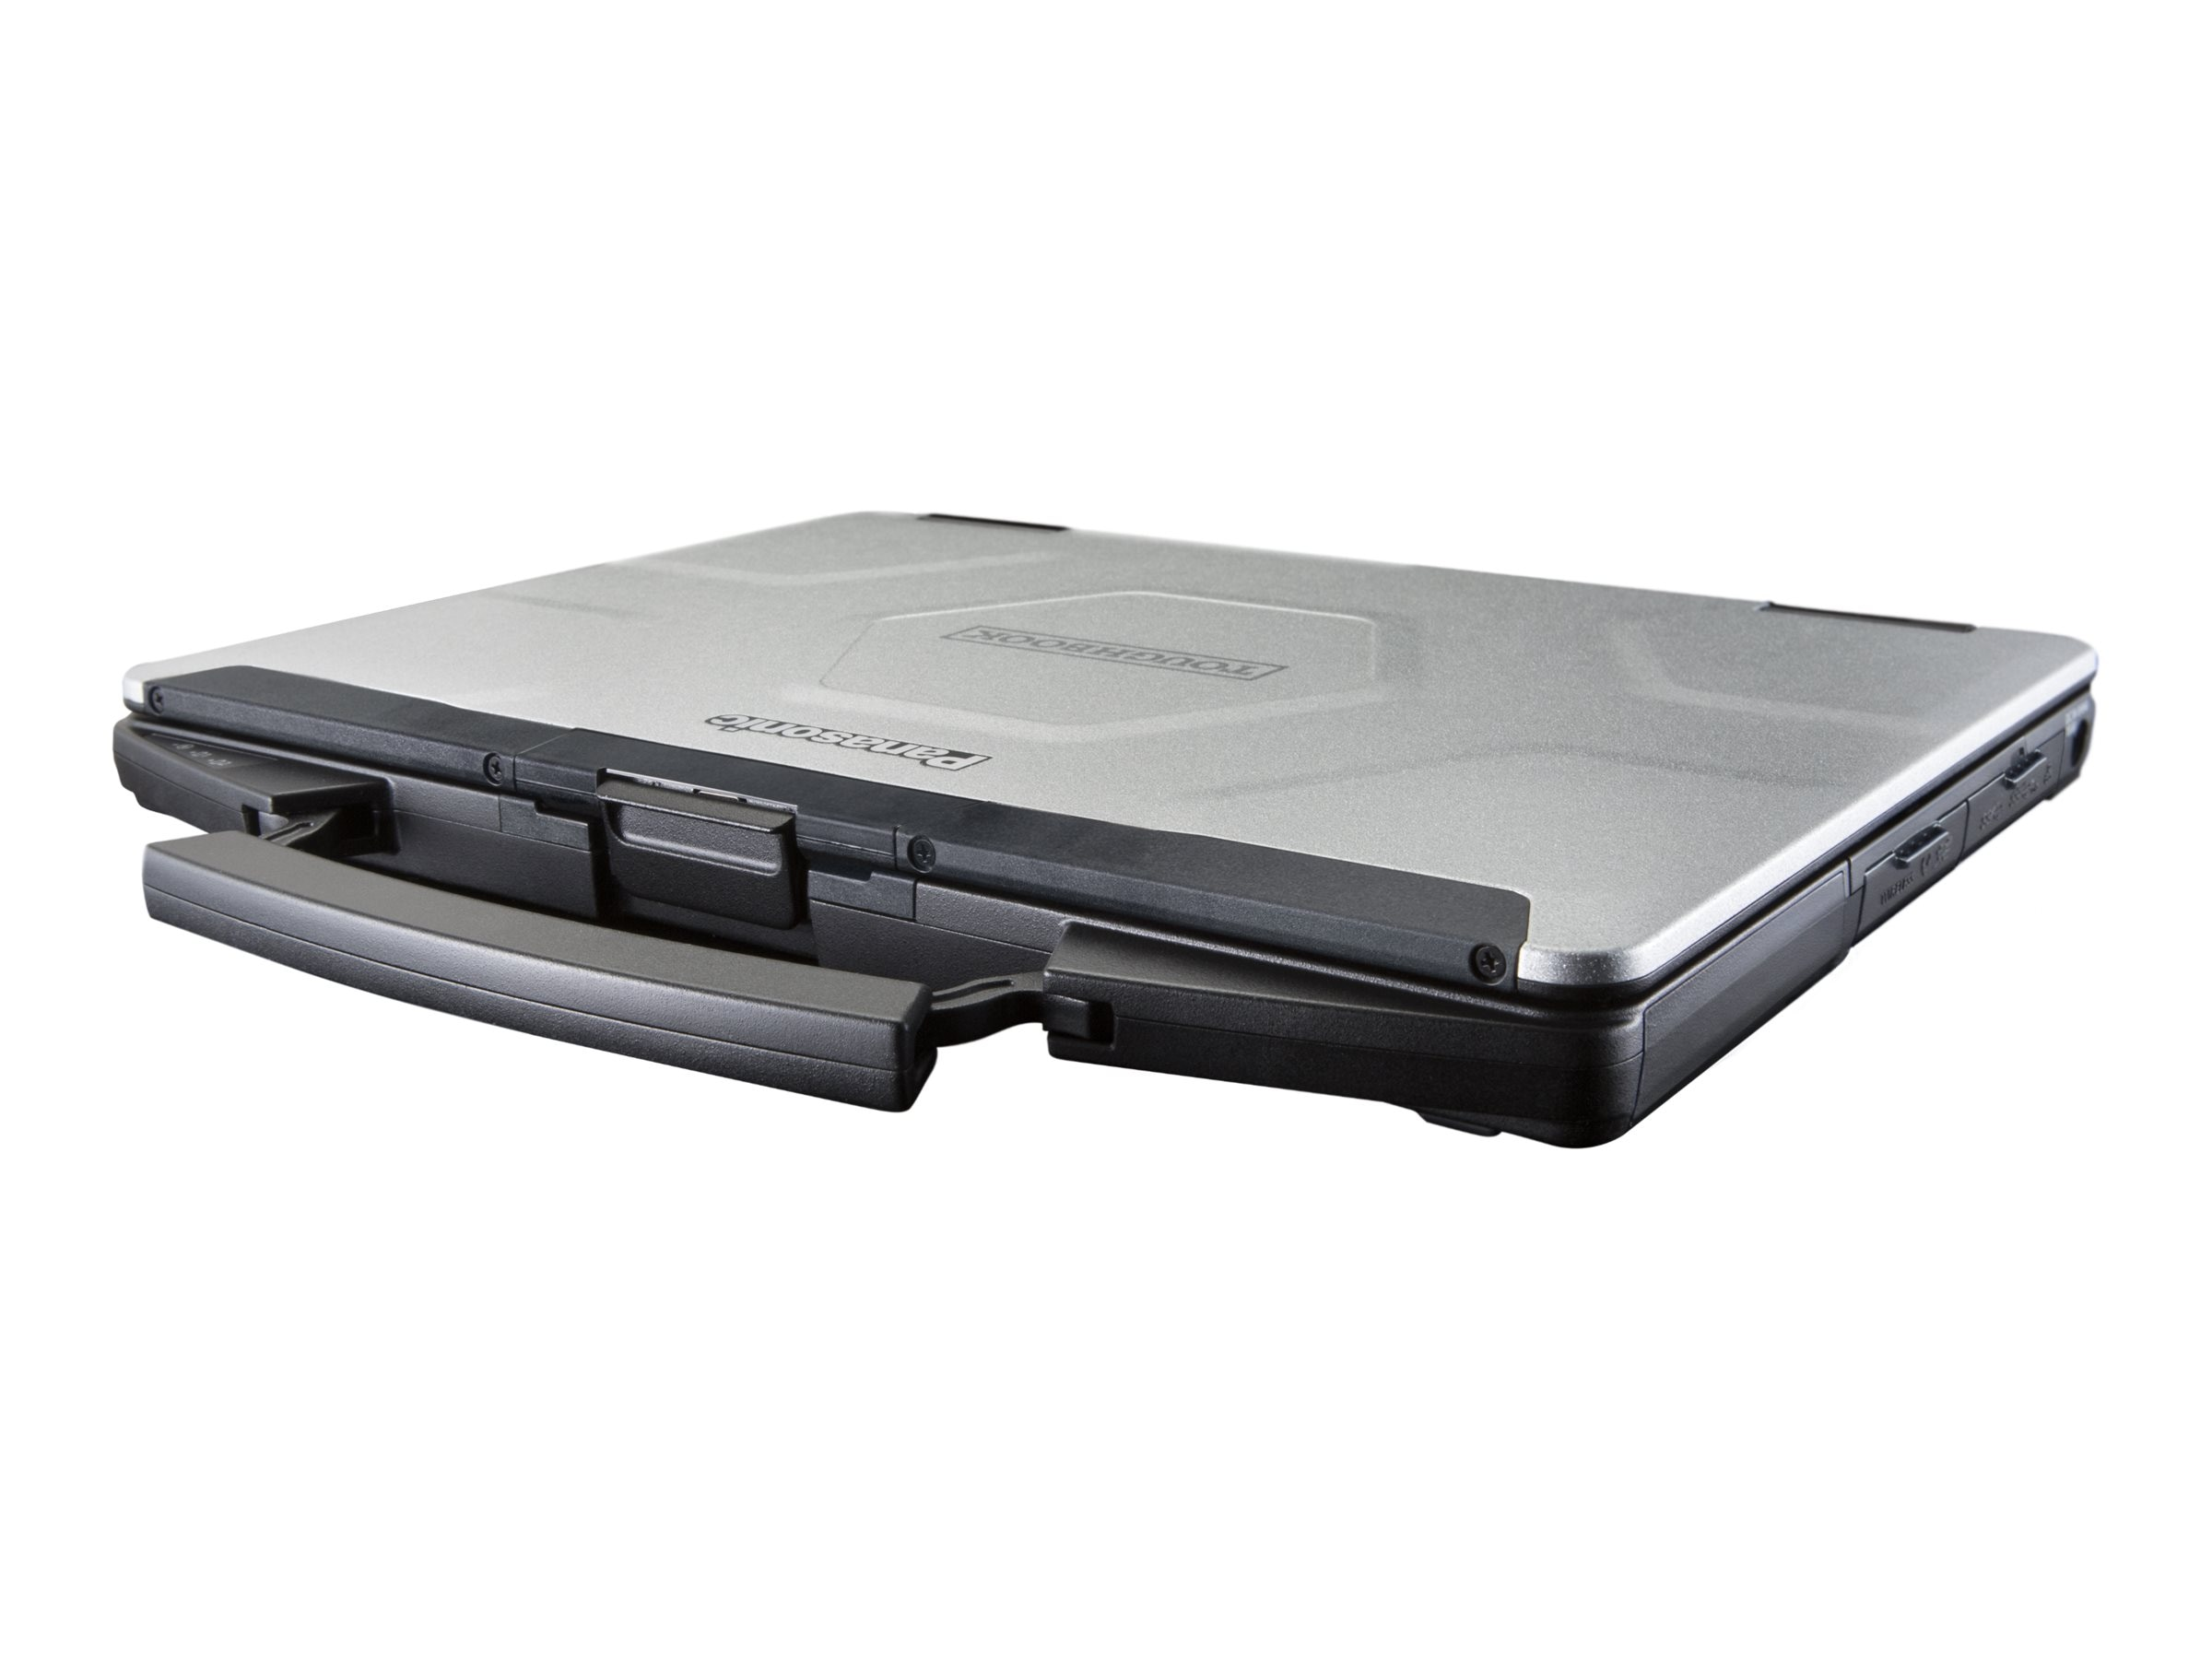 Panasonic Toughbook 54 8GB 512GB SSD 14 HD